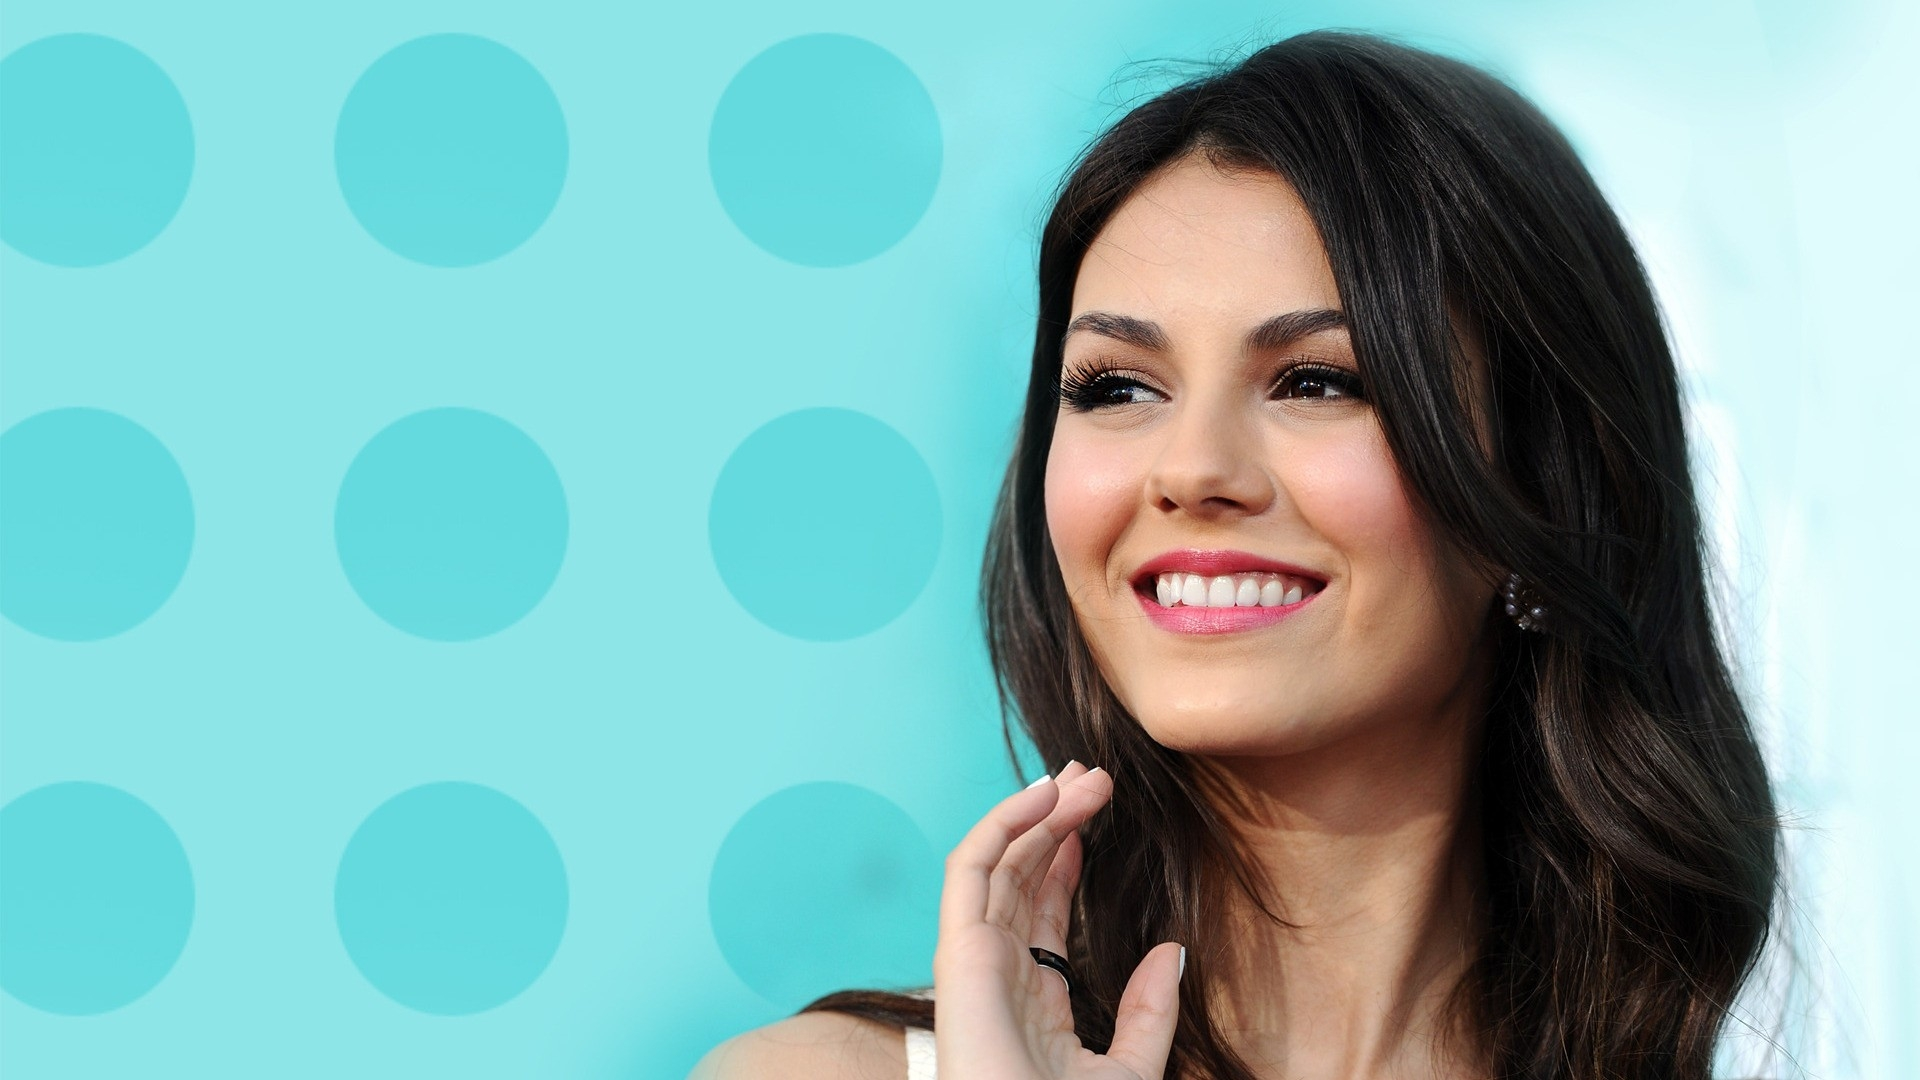 Justice Beautiful face HD Wallpapers HD Wallpapers Victoria Justice 1920x1080